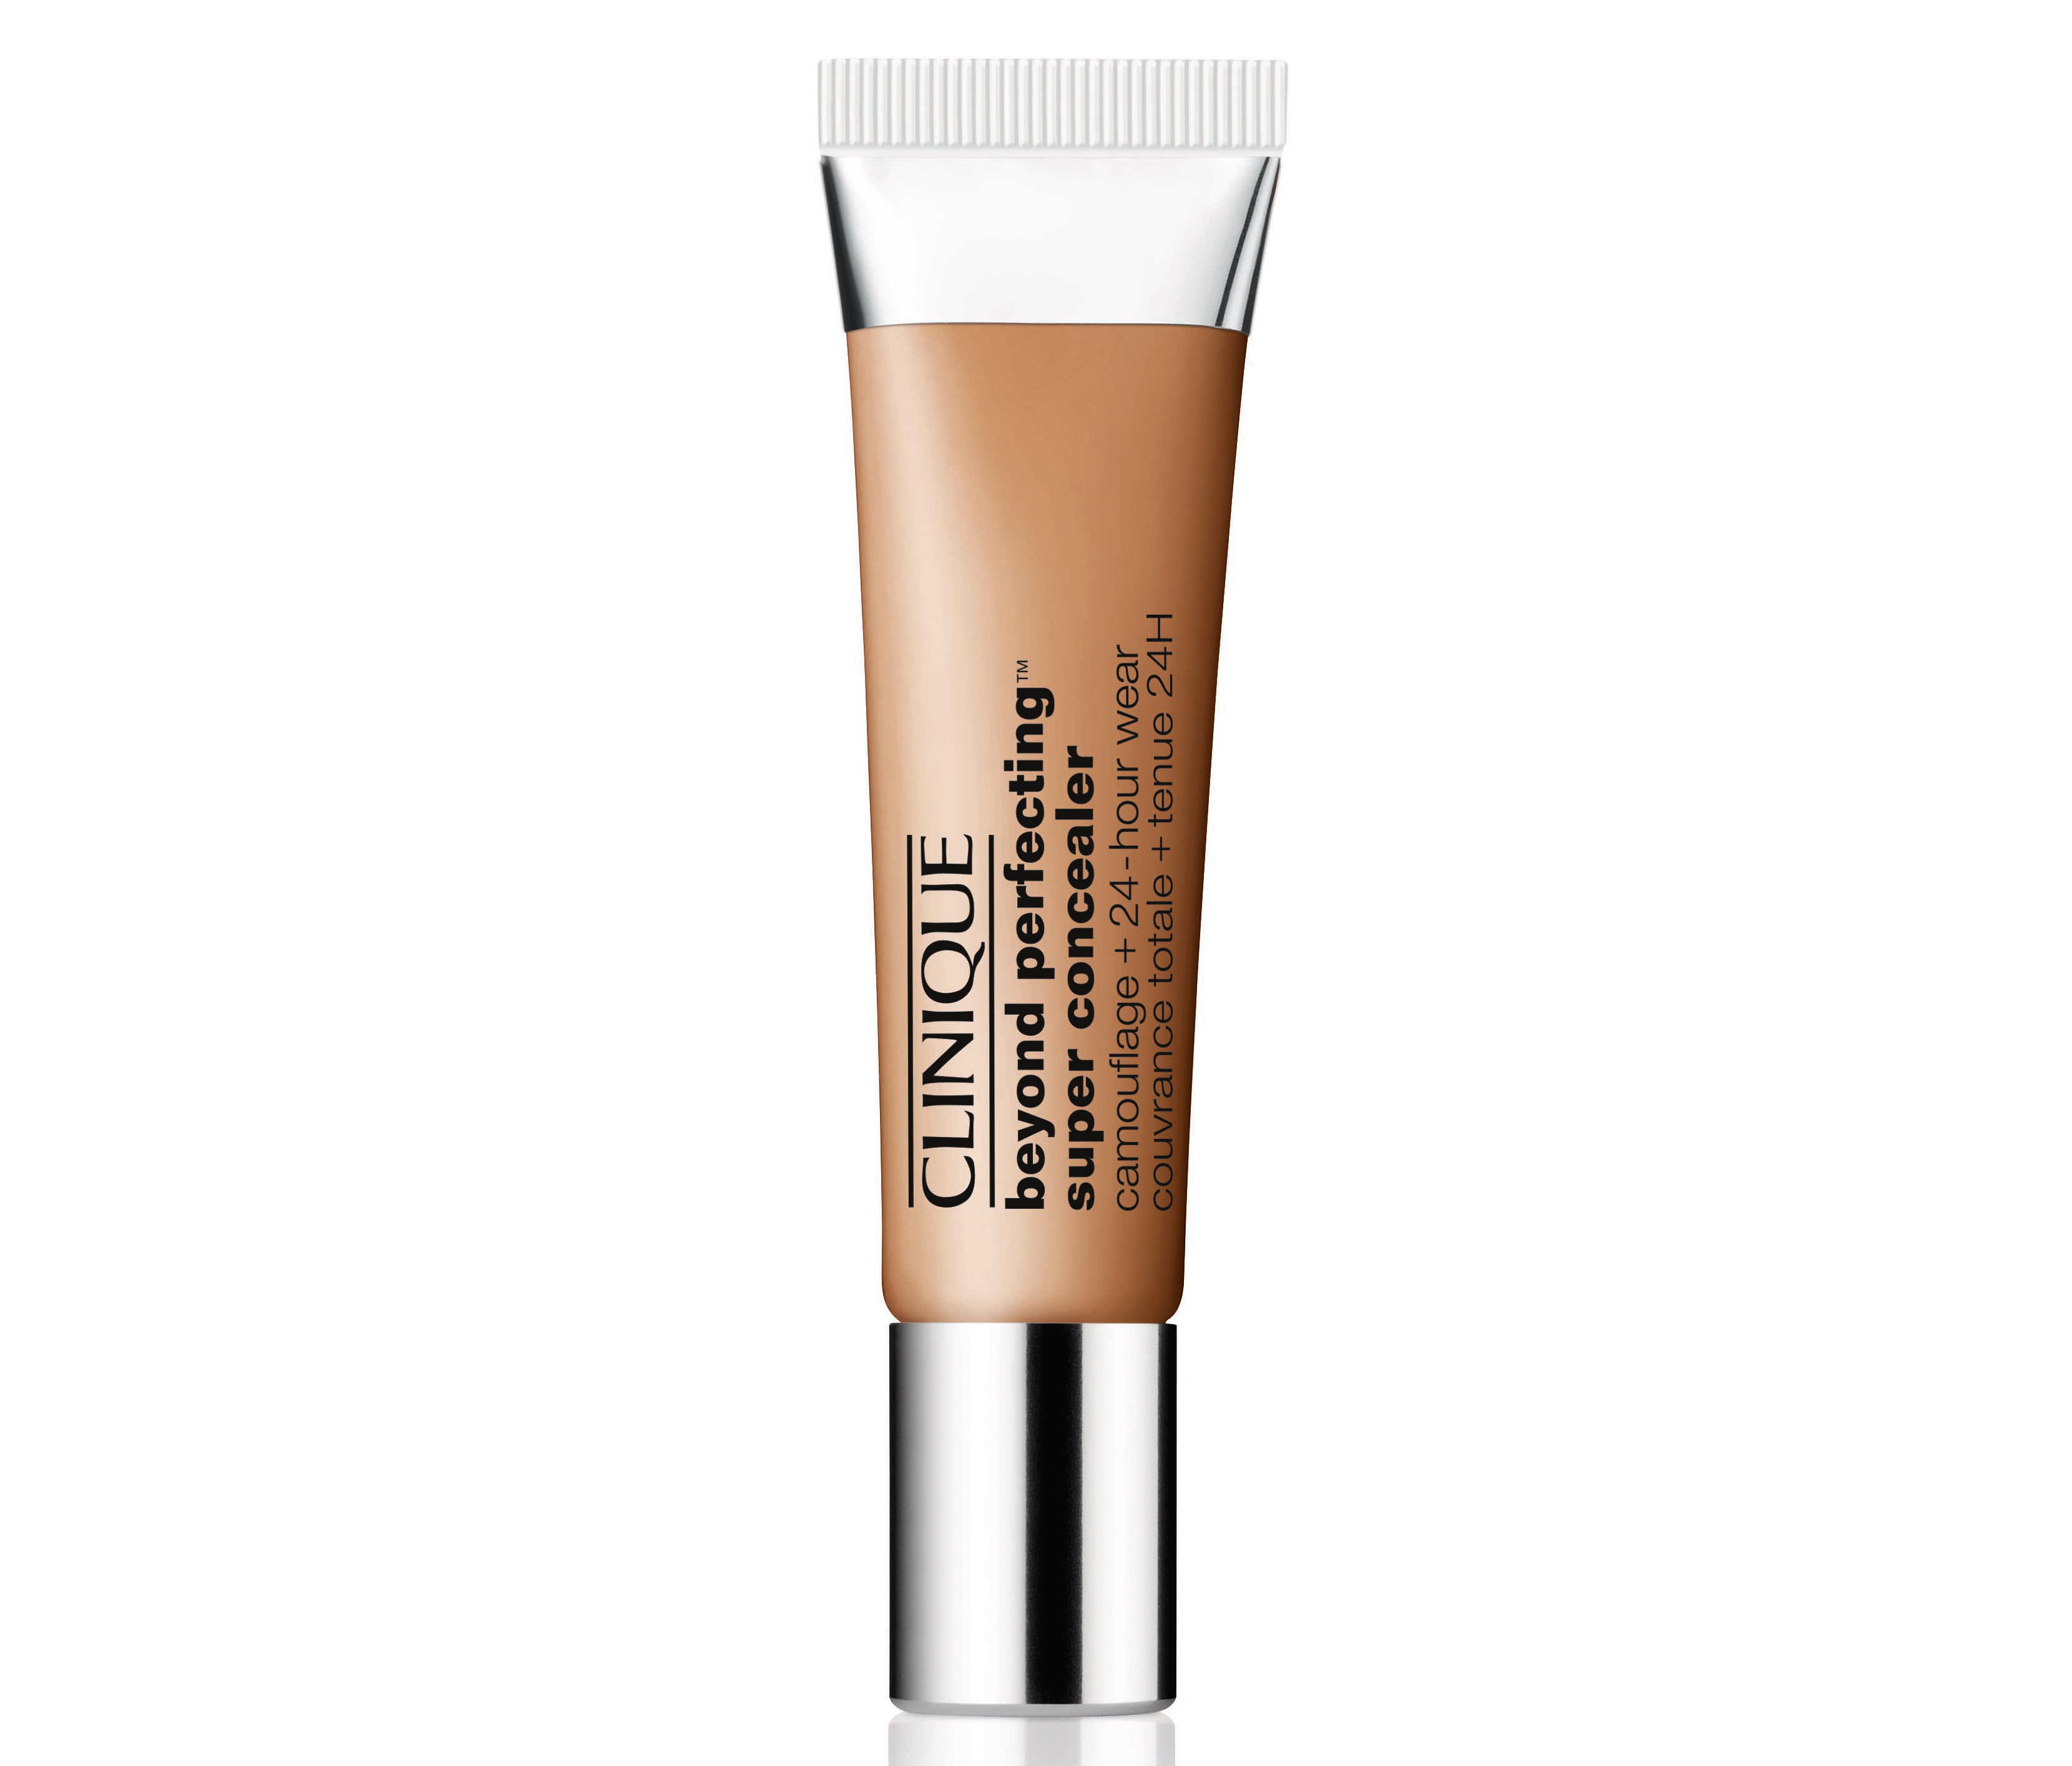 Clinique Beyond Perfecting Super Concealer